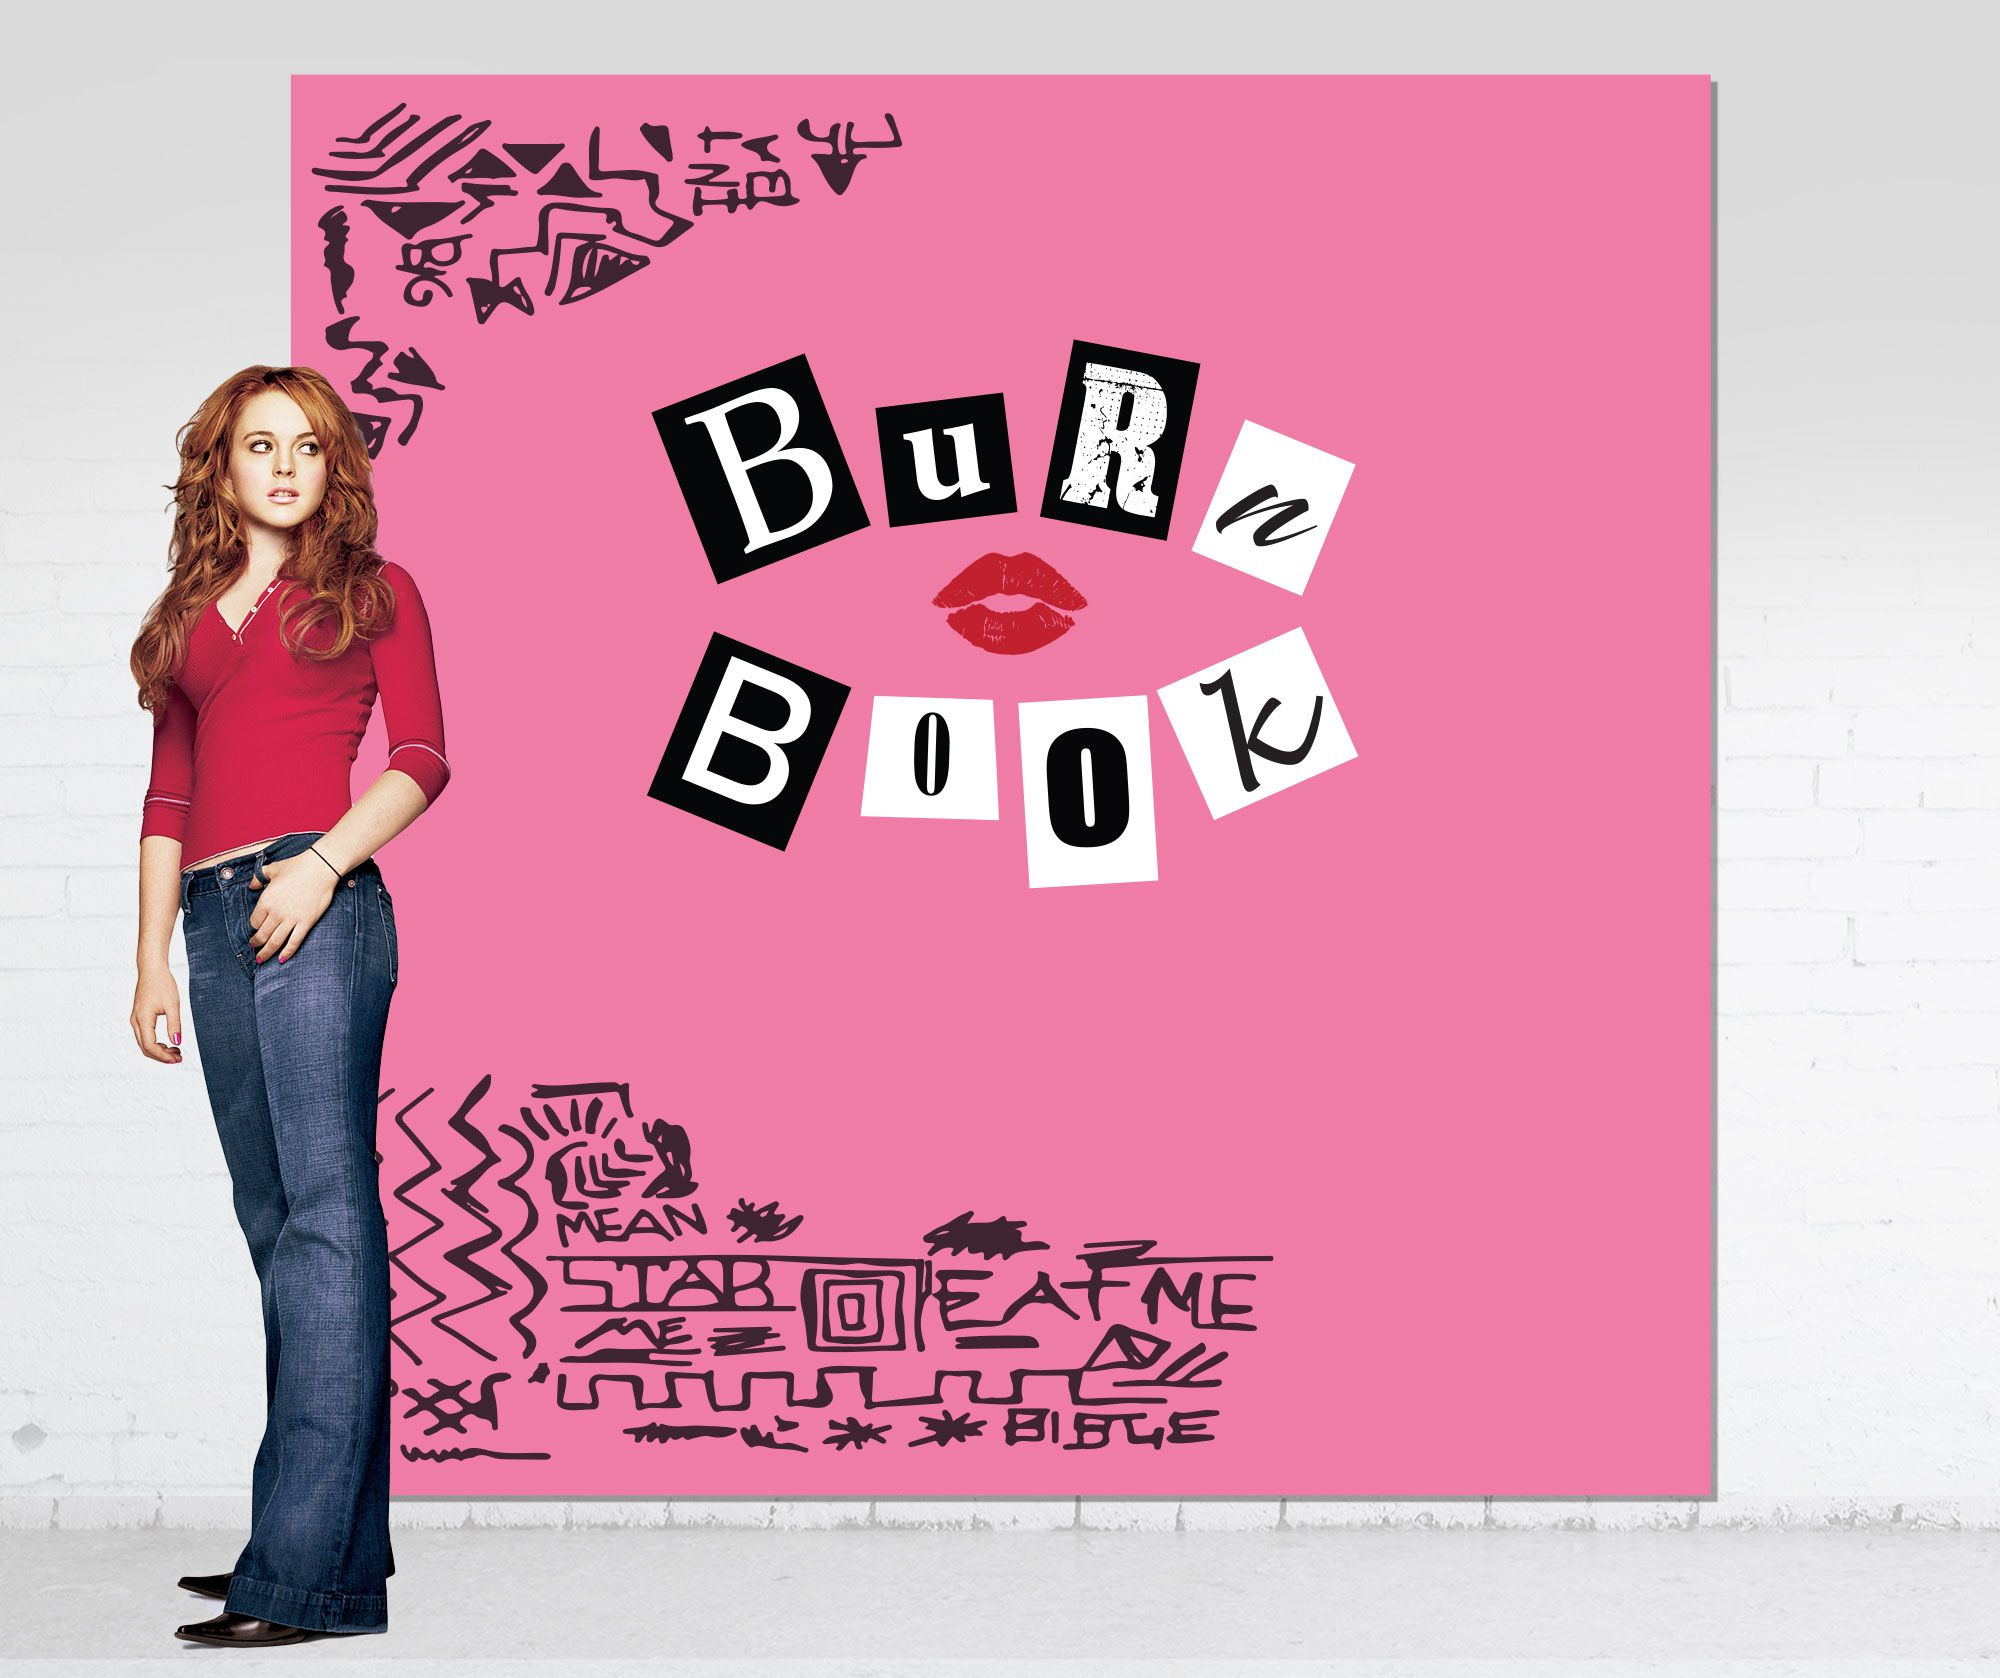 Mean Girls Theme Party Backdrop Burn Book Photo Booth Etsy Girls Party Themes Mean Girls Party Backdrops For Parties